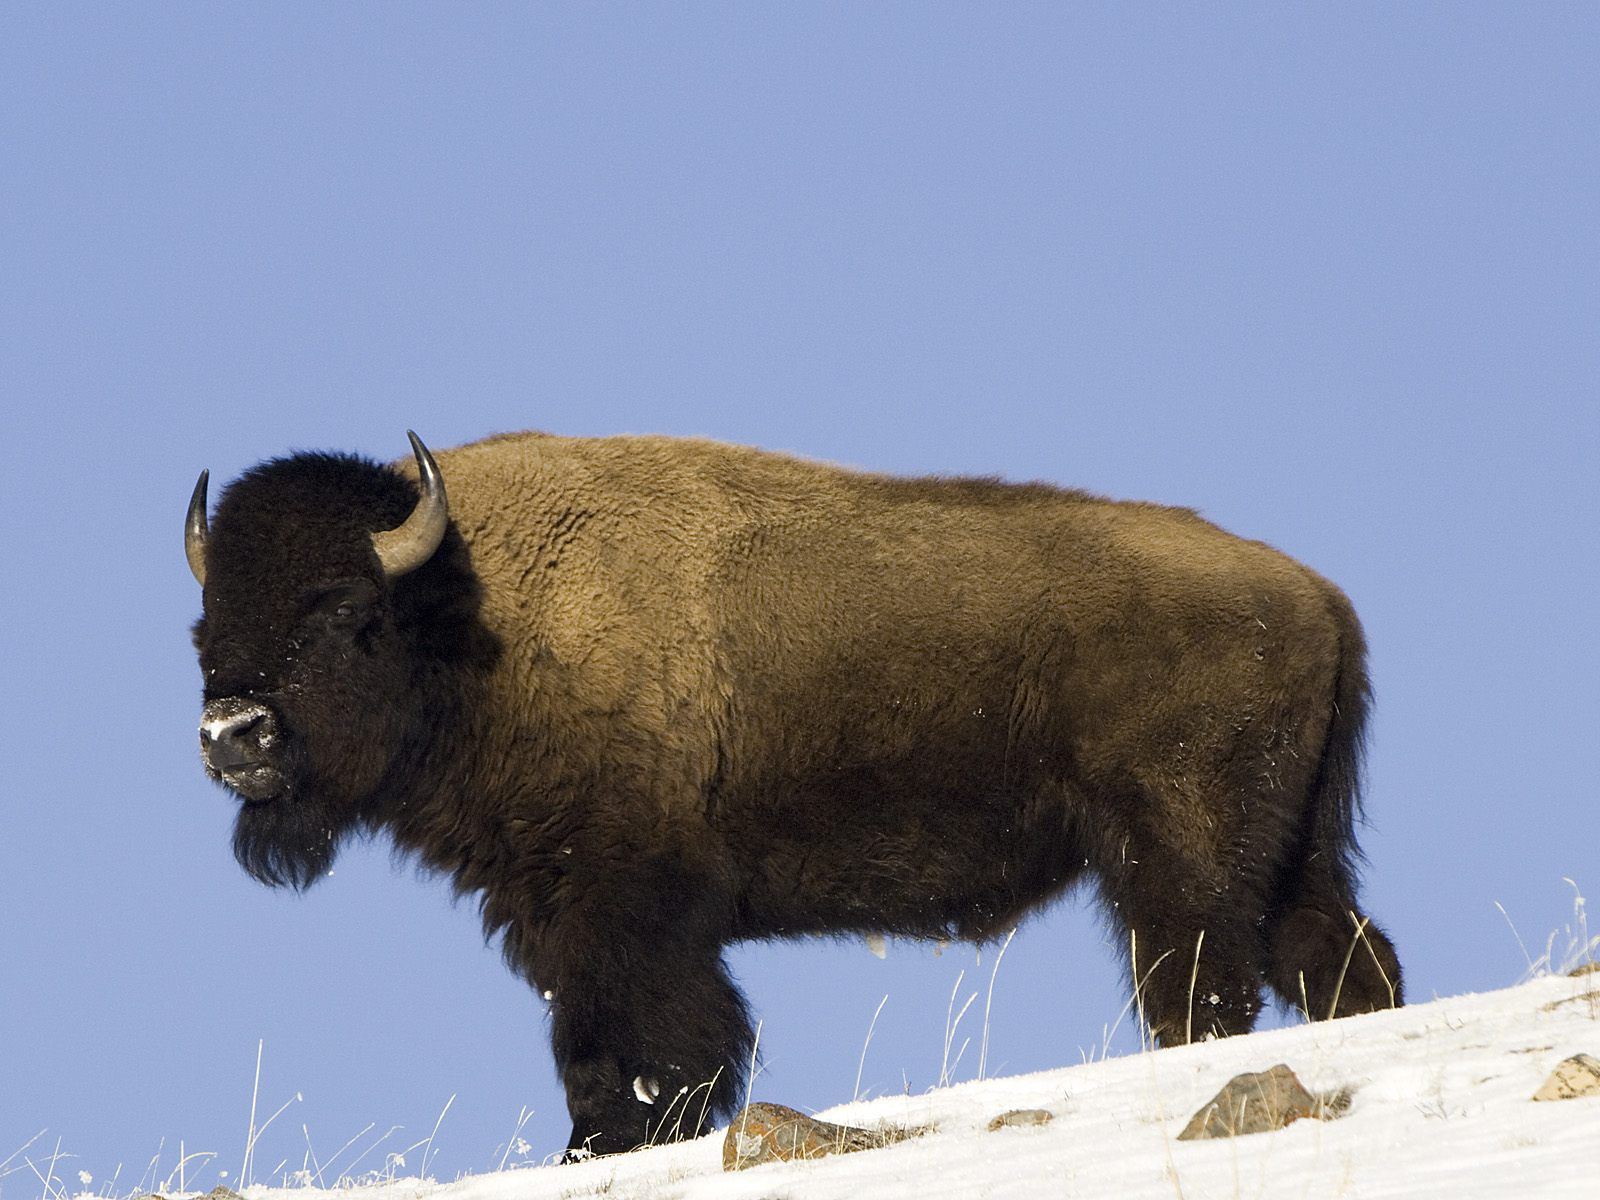 Funny buffalo picture for desktop |Funny Animal Pictures